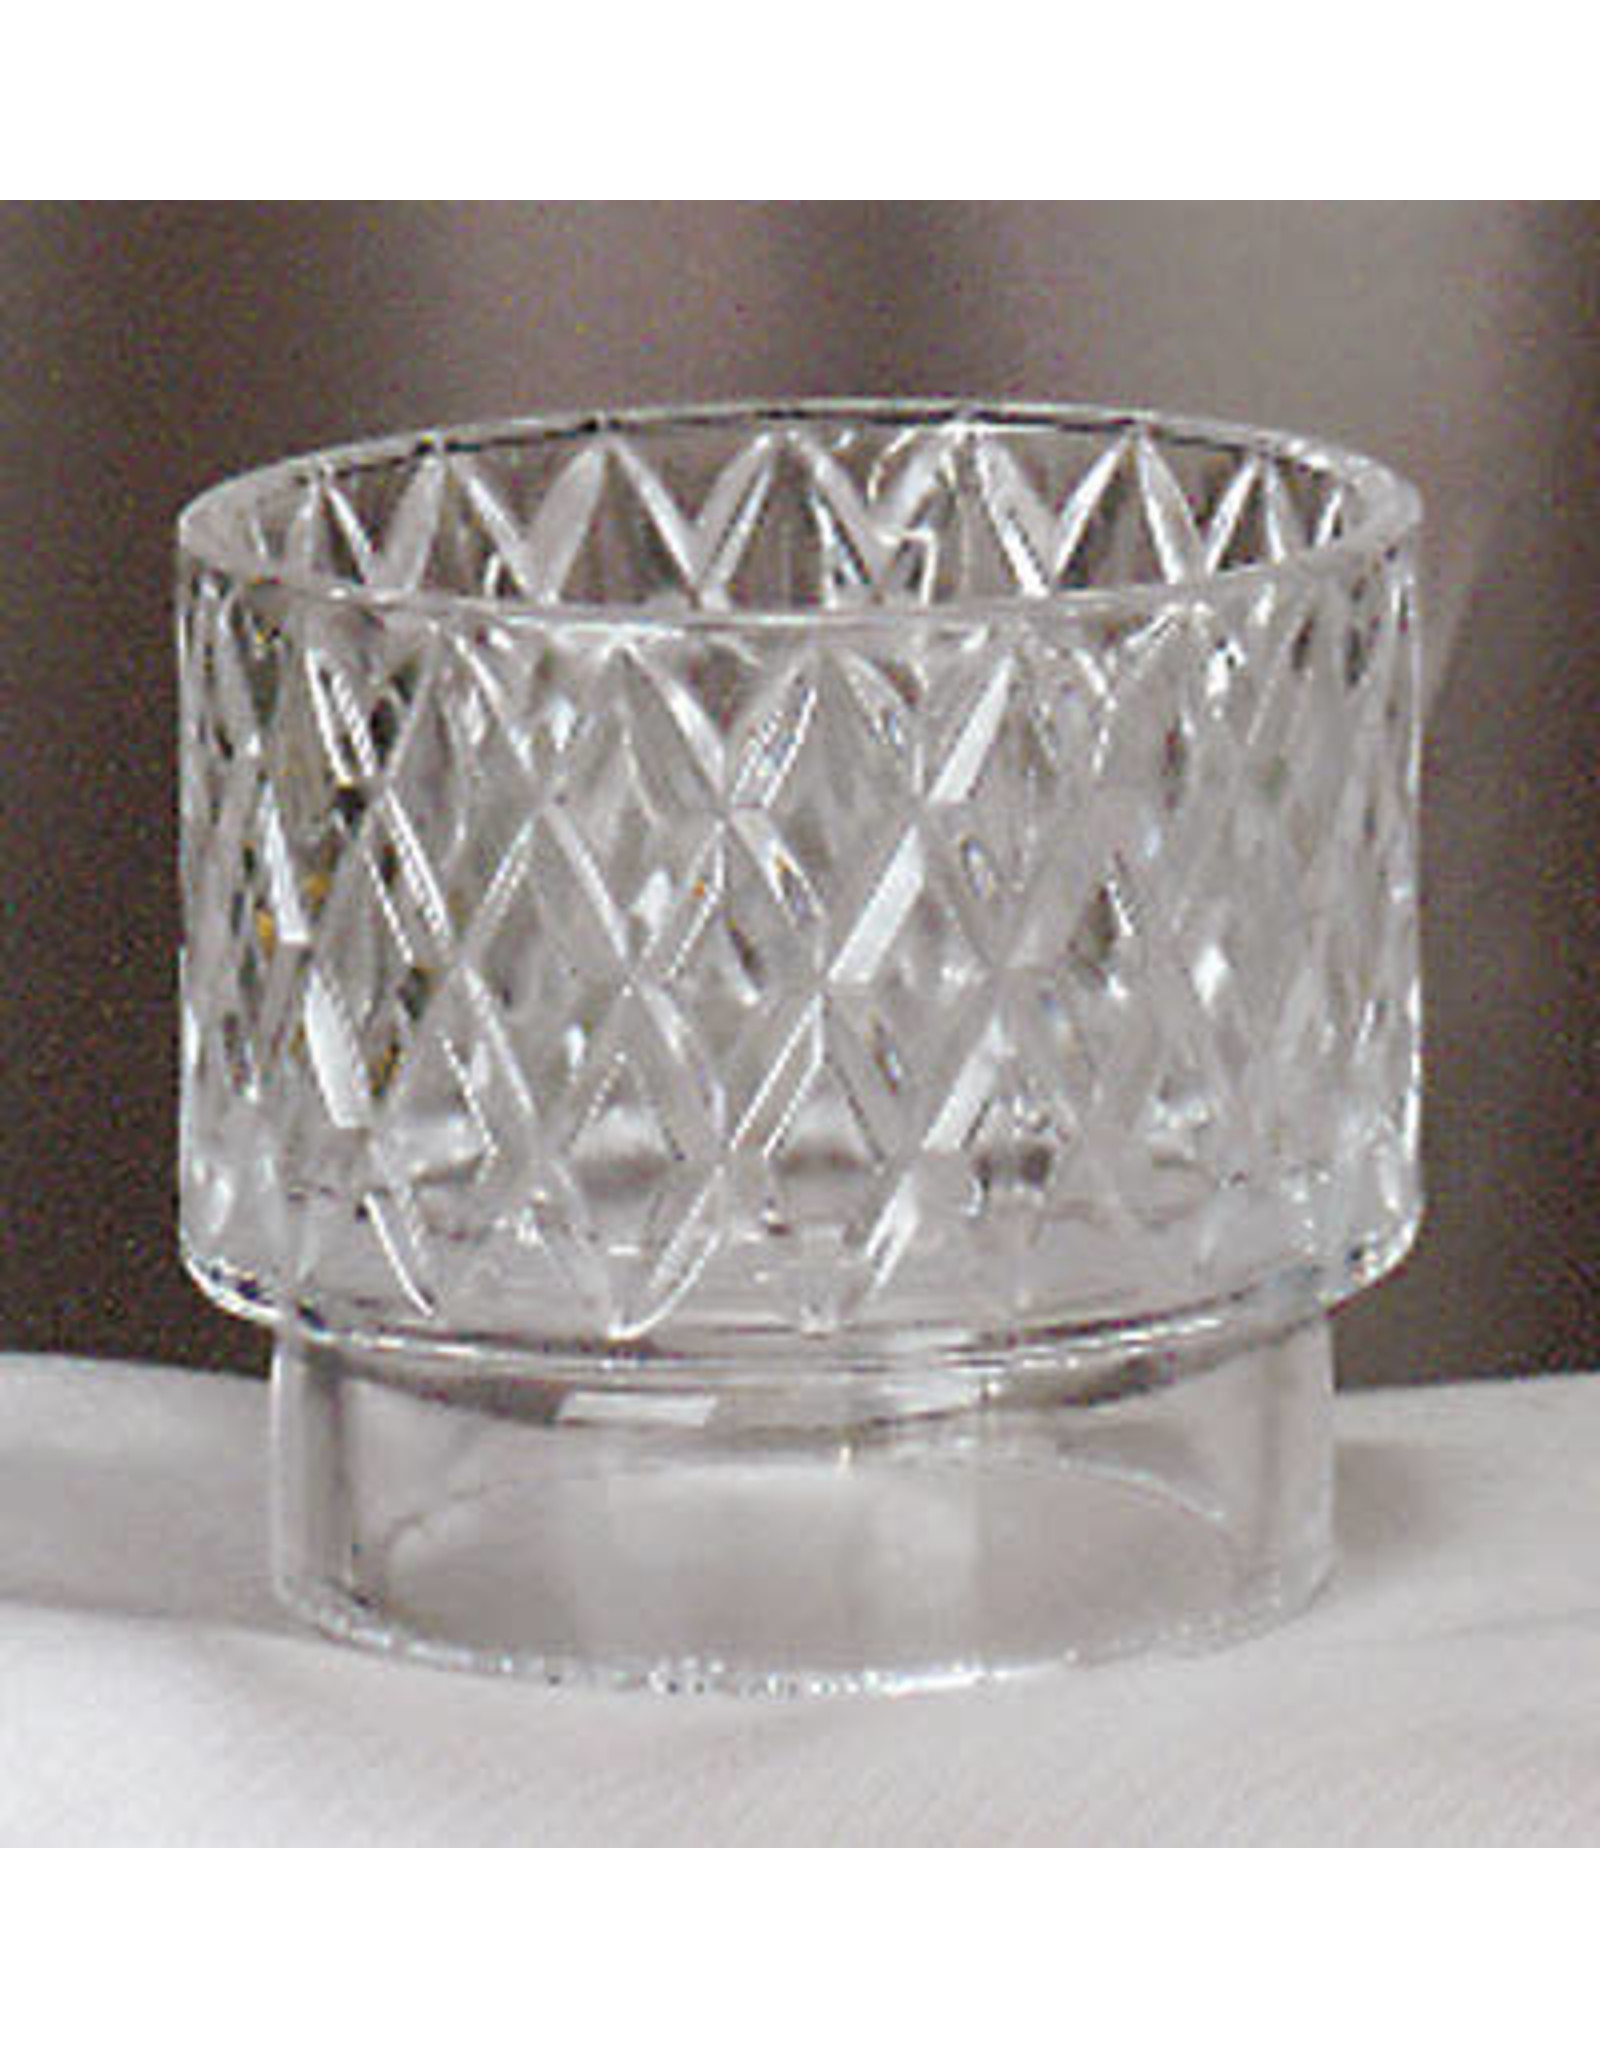 "Crystal Flame Guard for 3-1/4"" Oil Candle Shell"